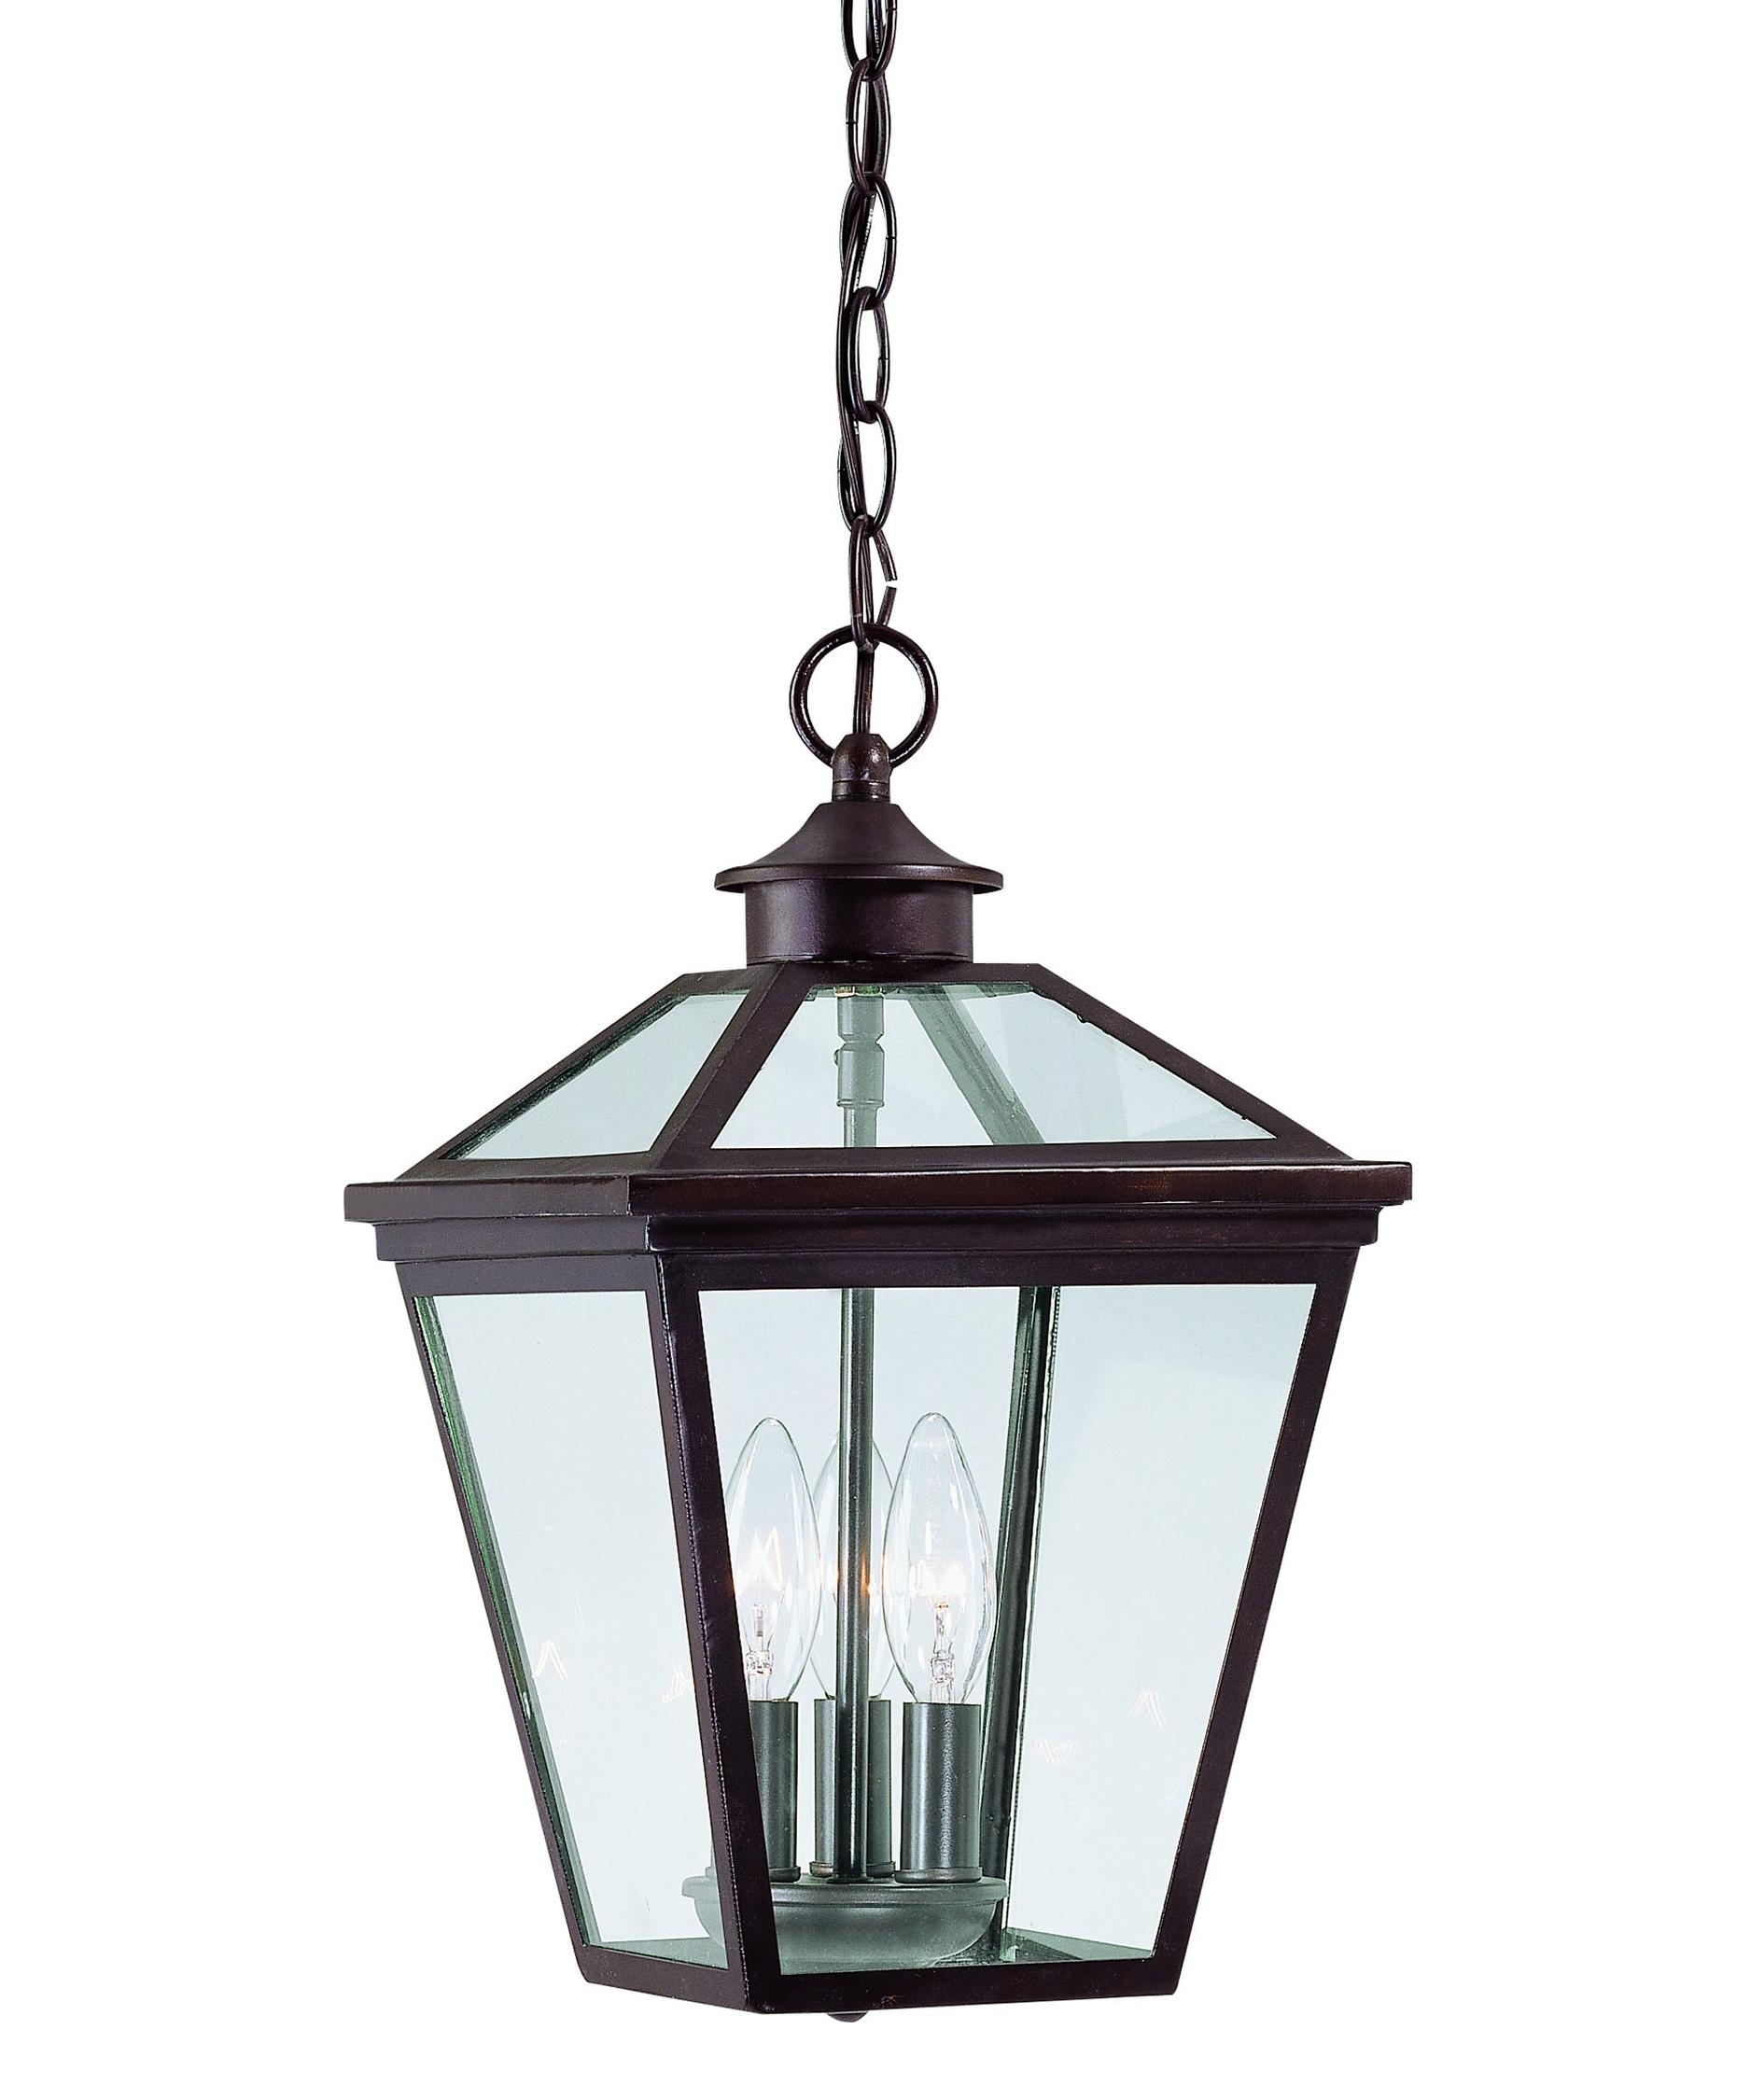 Savoy House 5 146 13 Ellijay 9 Inch Wide 3 Light Outdoor Hanging With Regard To Outdoor Hanging Glass Lanterns (View 10 of 15)